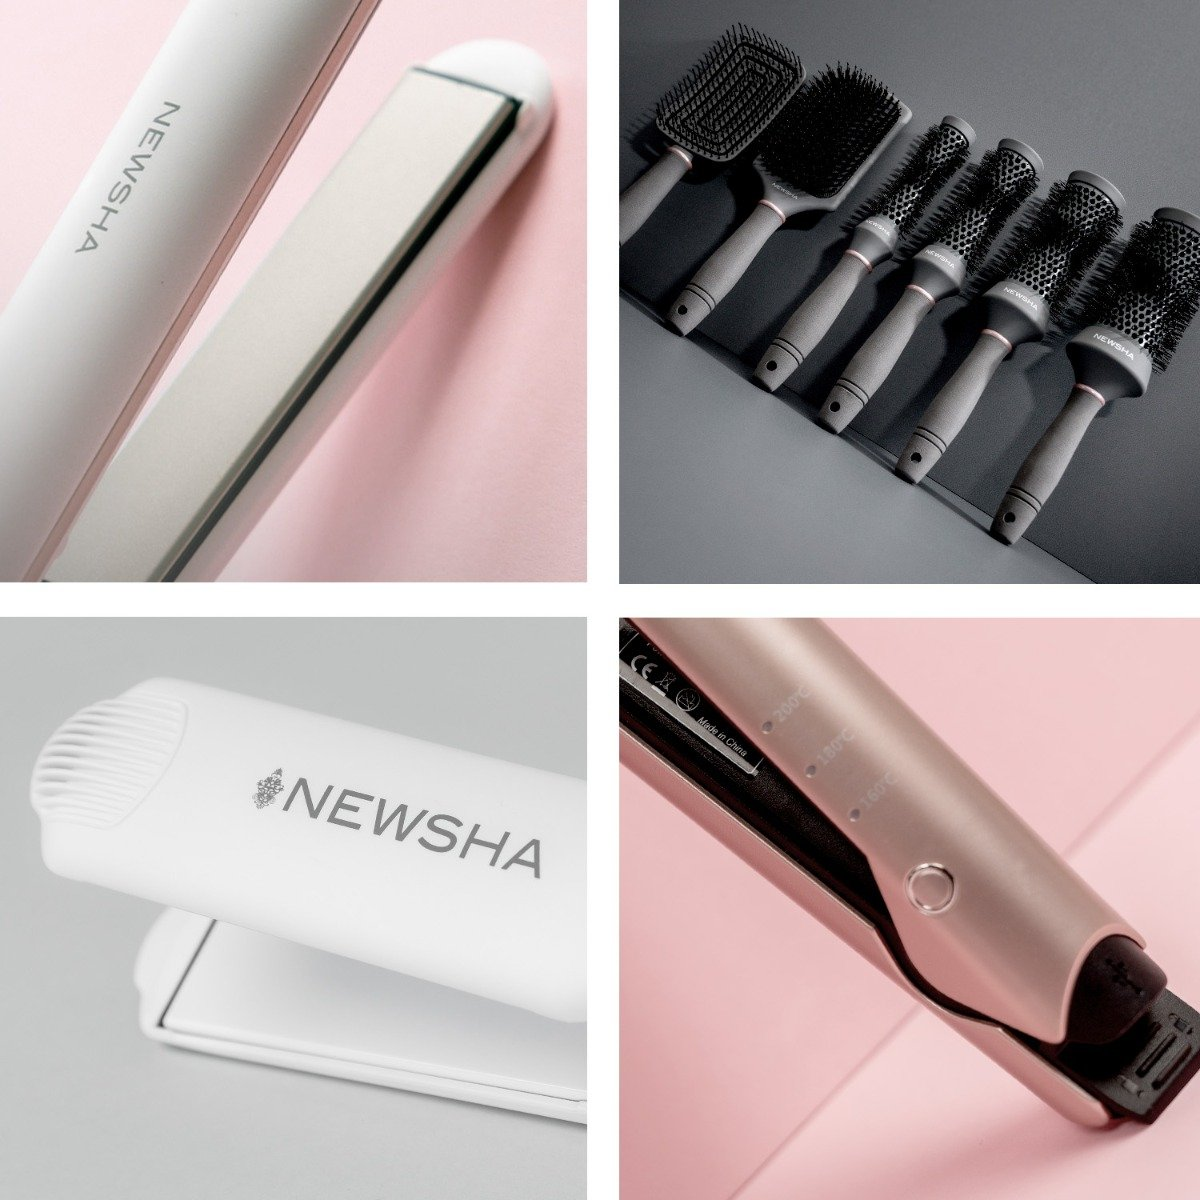 Fall in love with our NEWSHA Styling-Tools